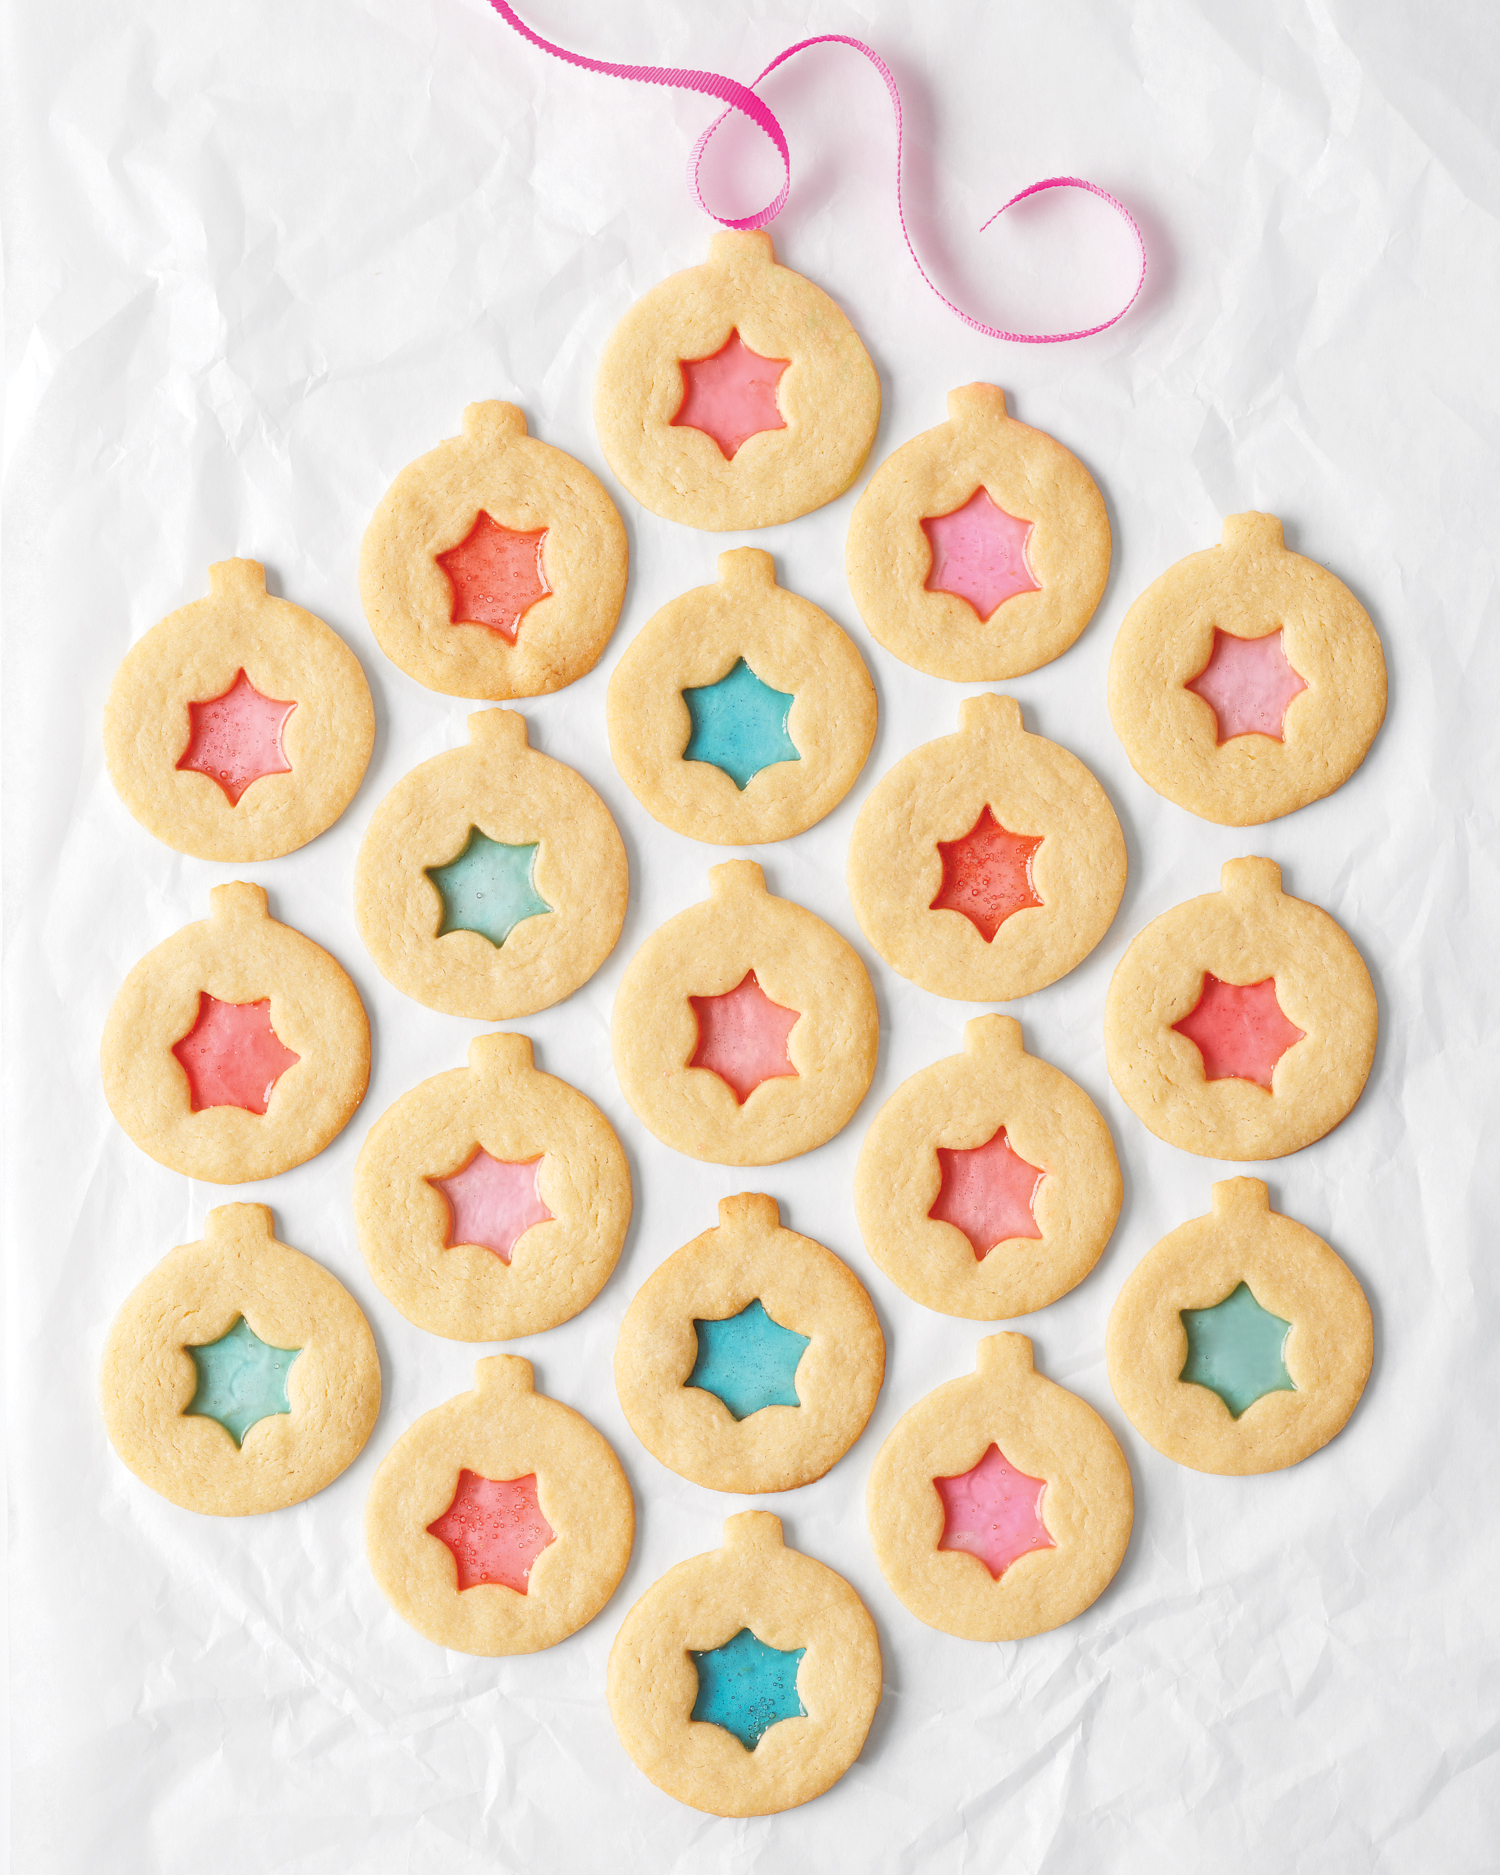 stained-glass-cookies-med107742.jpg